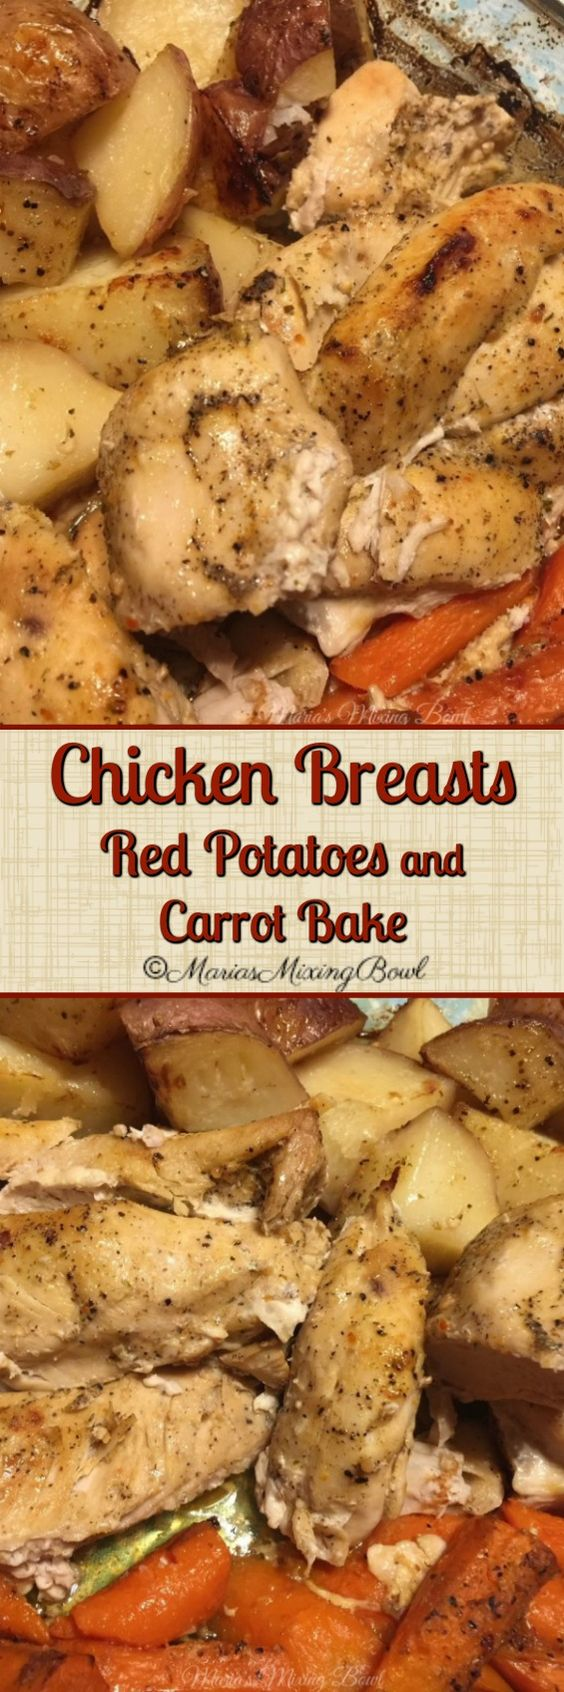 Chicken Breasts, Red Potatoes and Carrot Bake - A deliciousrecipe that is a one pan wonder. Only requiring 5 ingredients and 10 minutes of prep time.